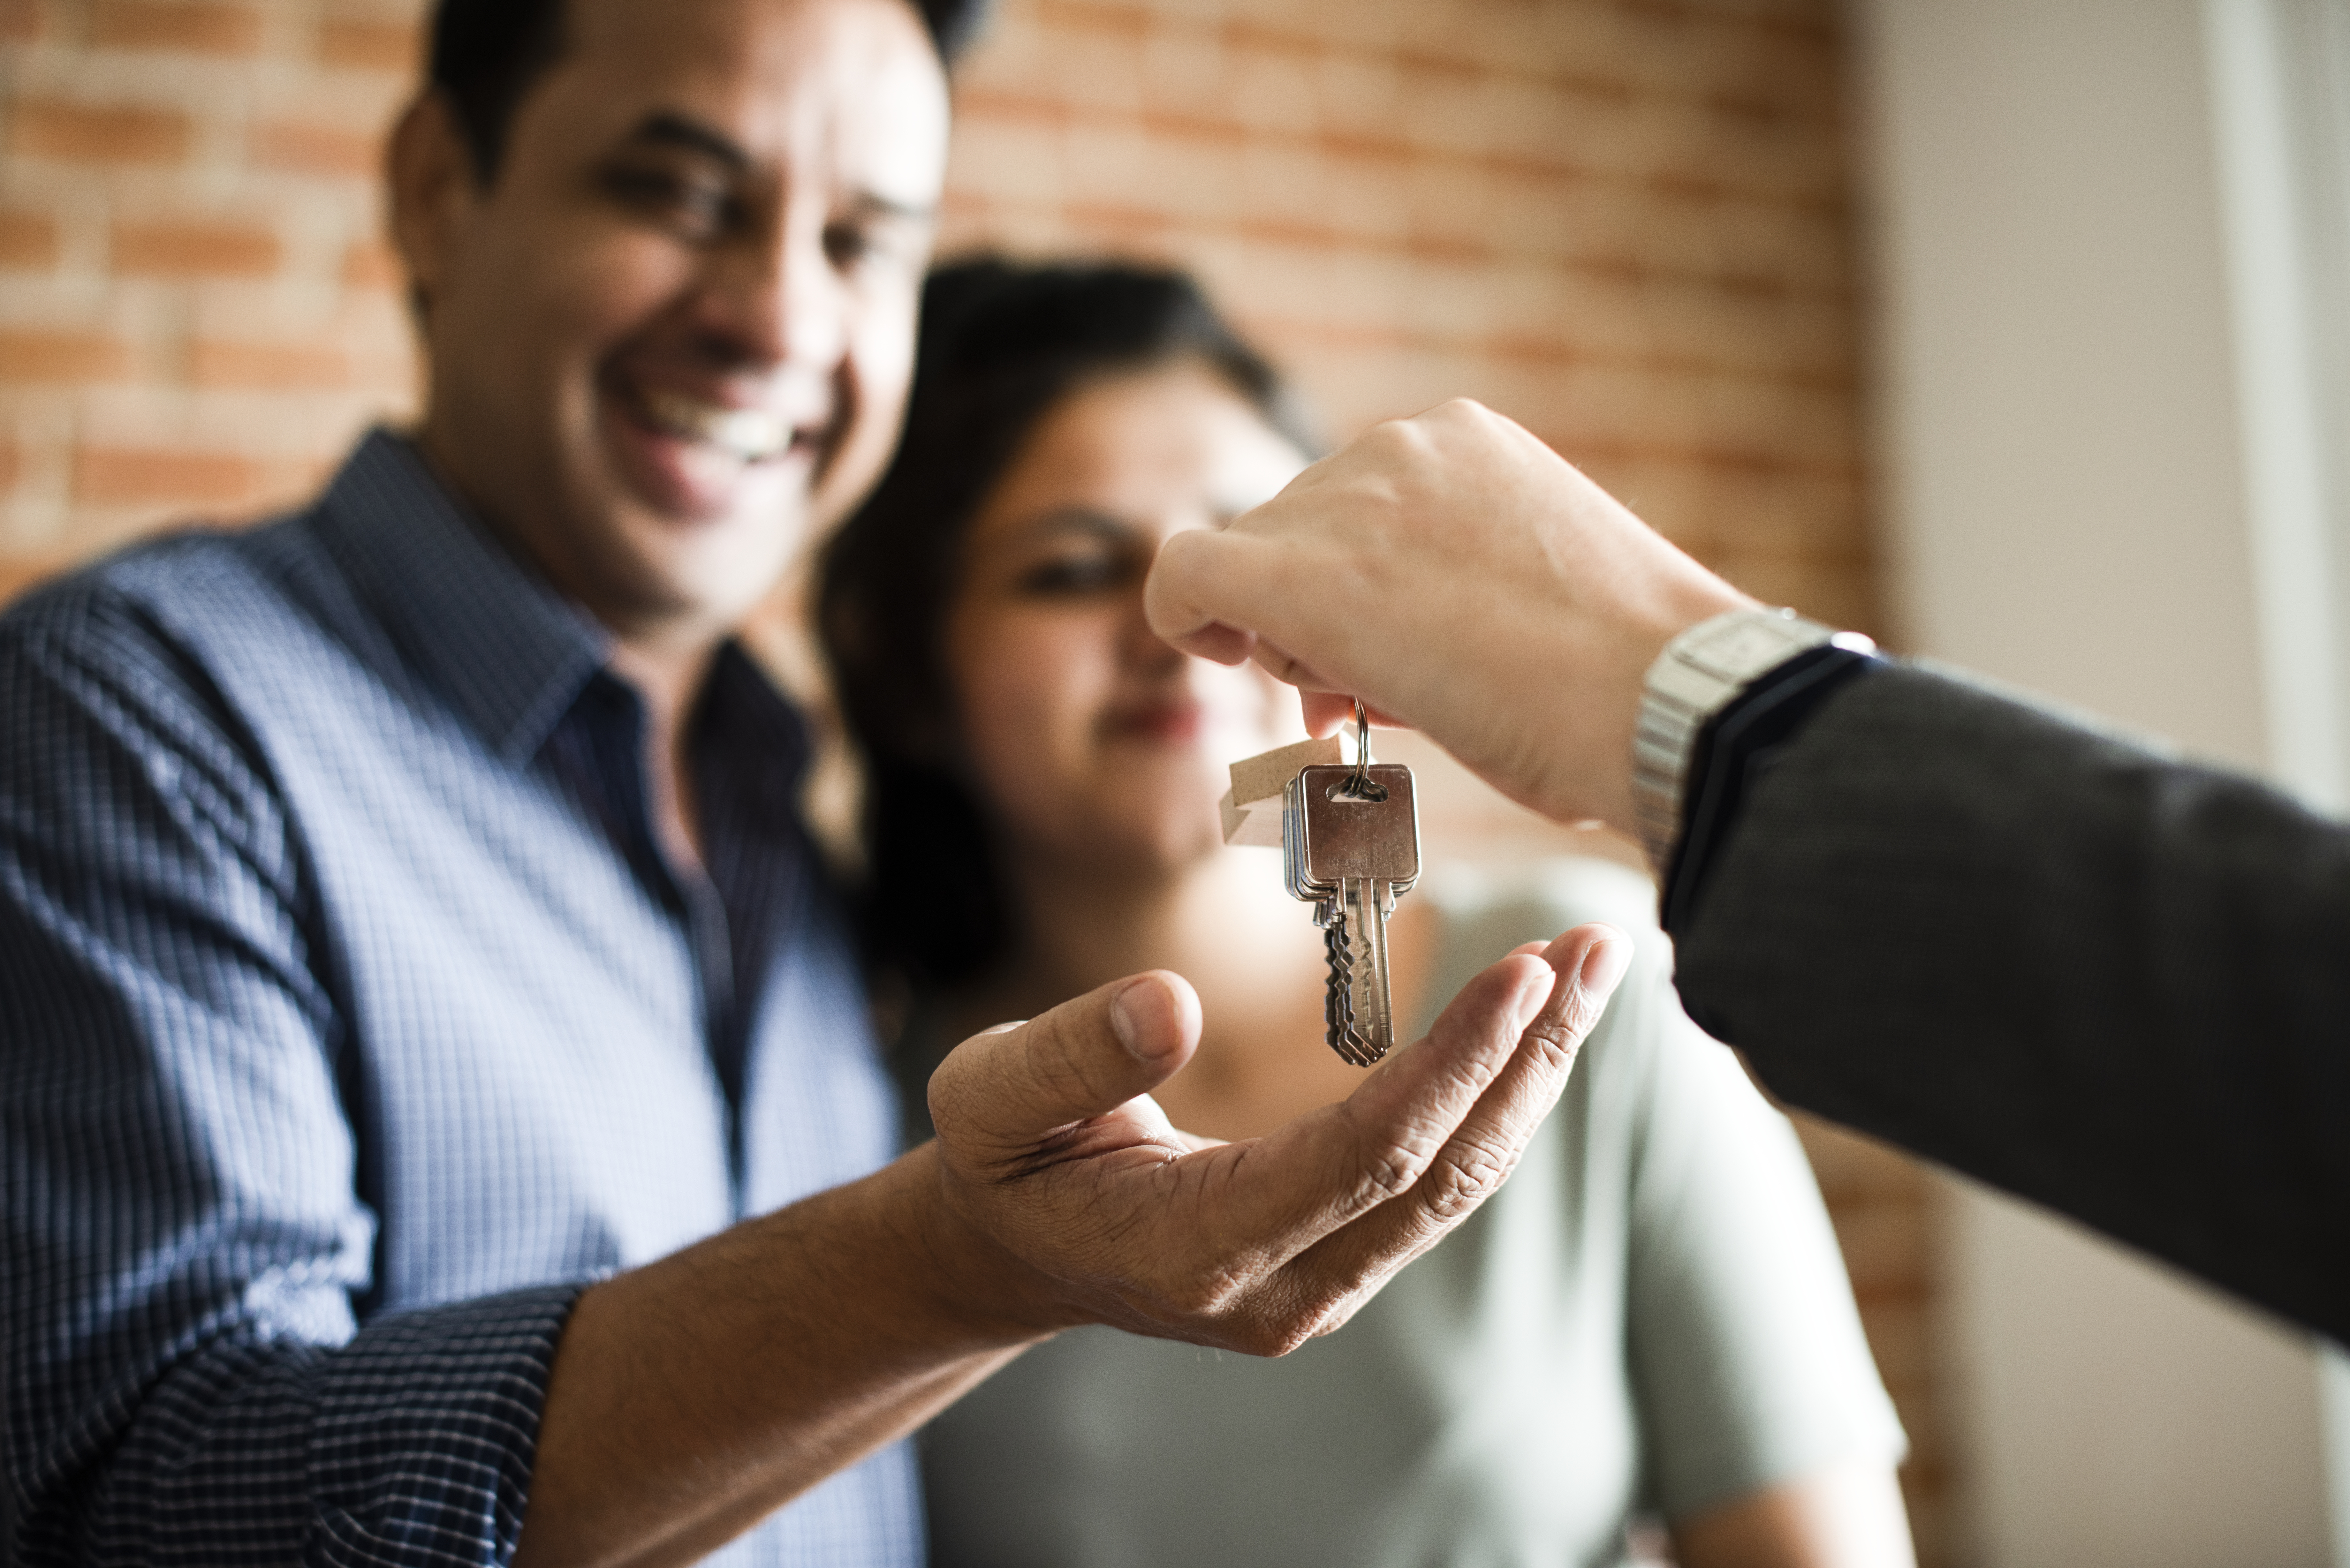 A homebuyer receiving the keys to their new home